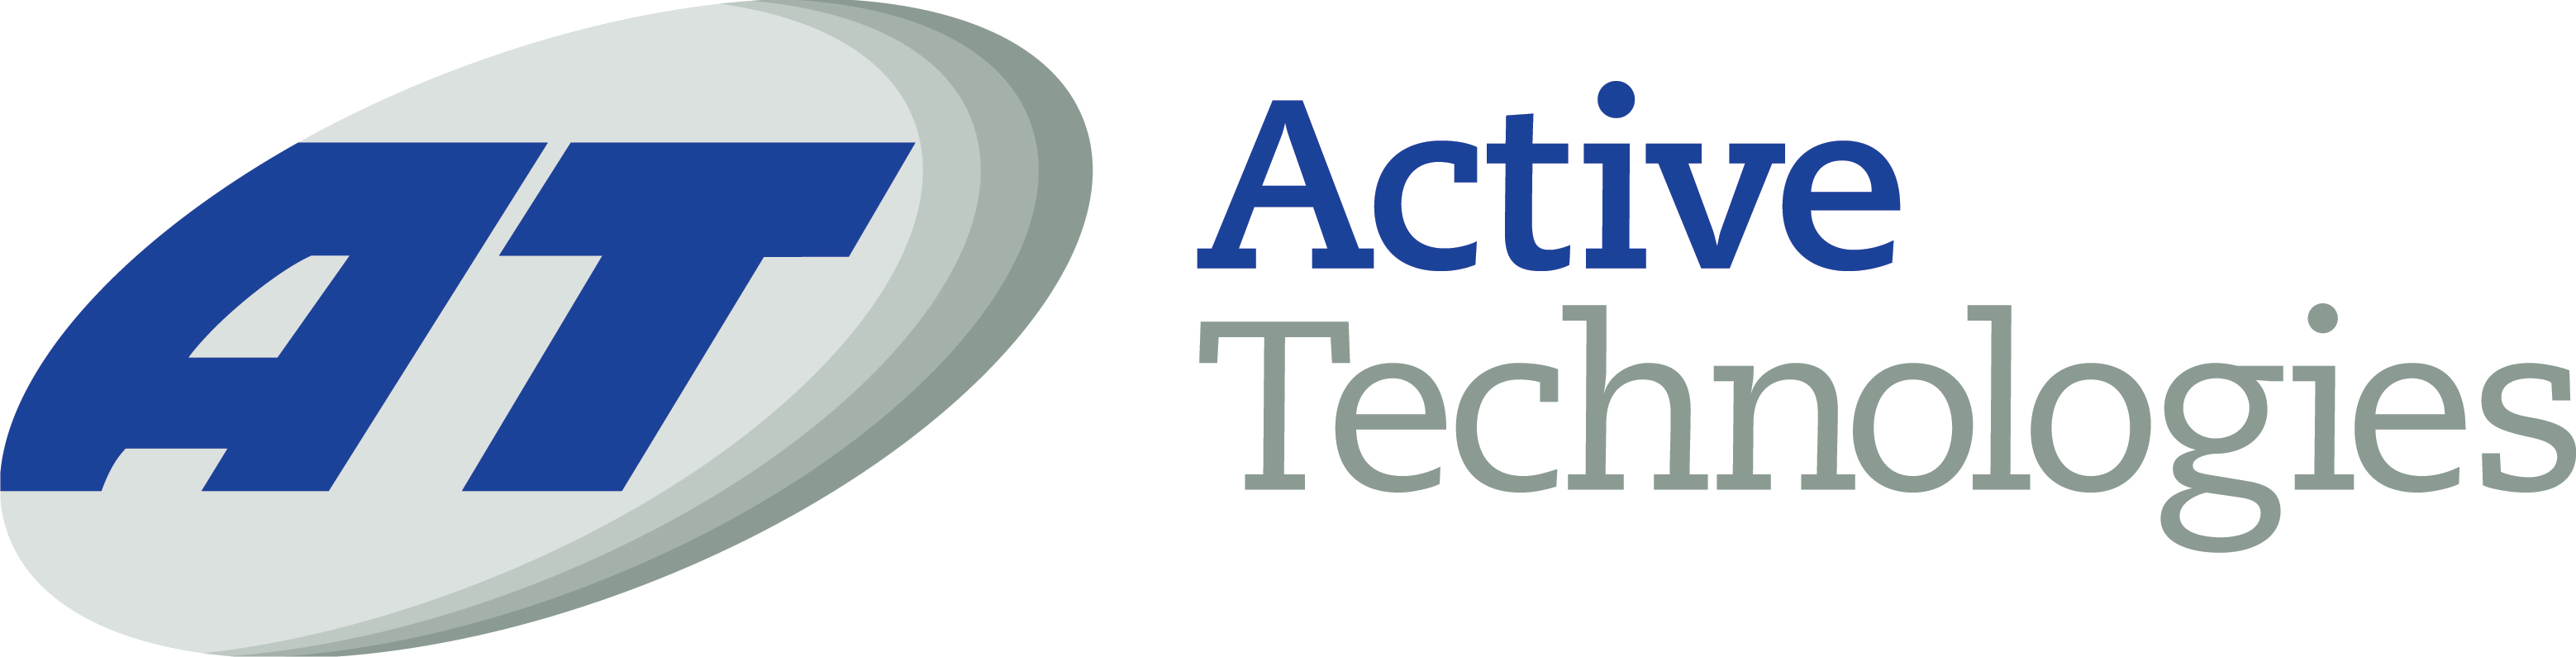 Active Technologies Limited